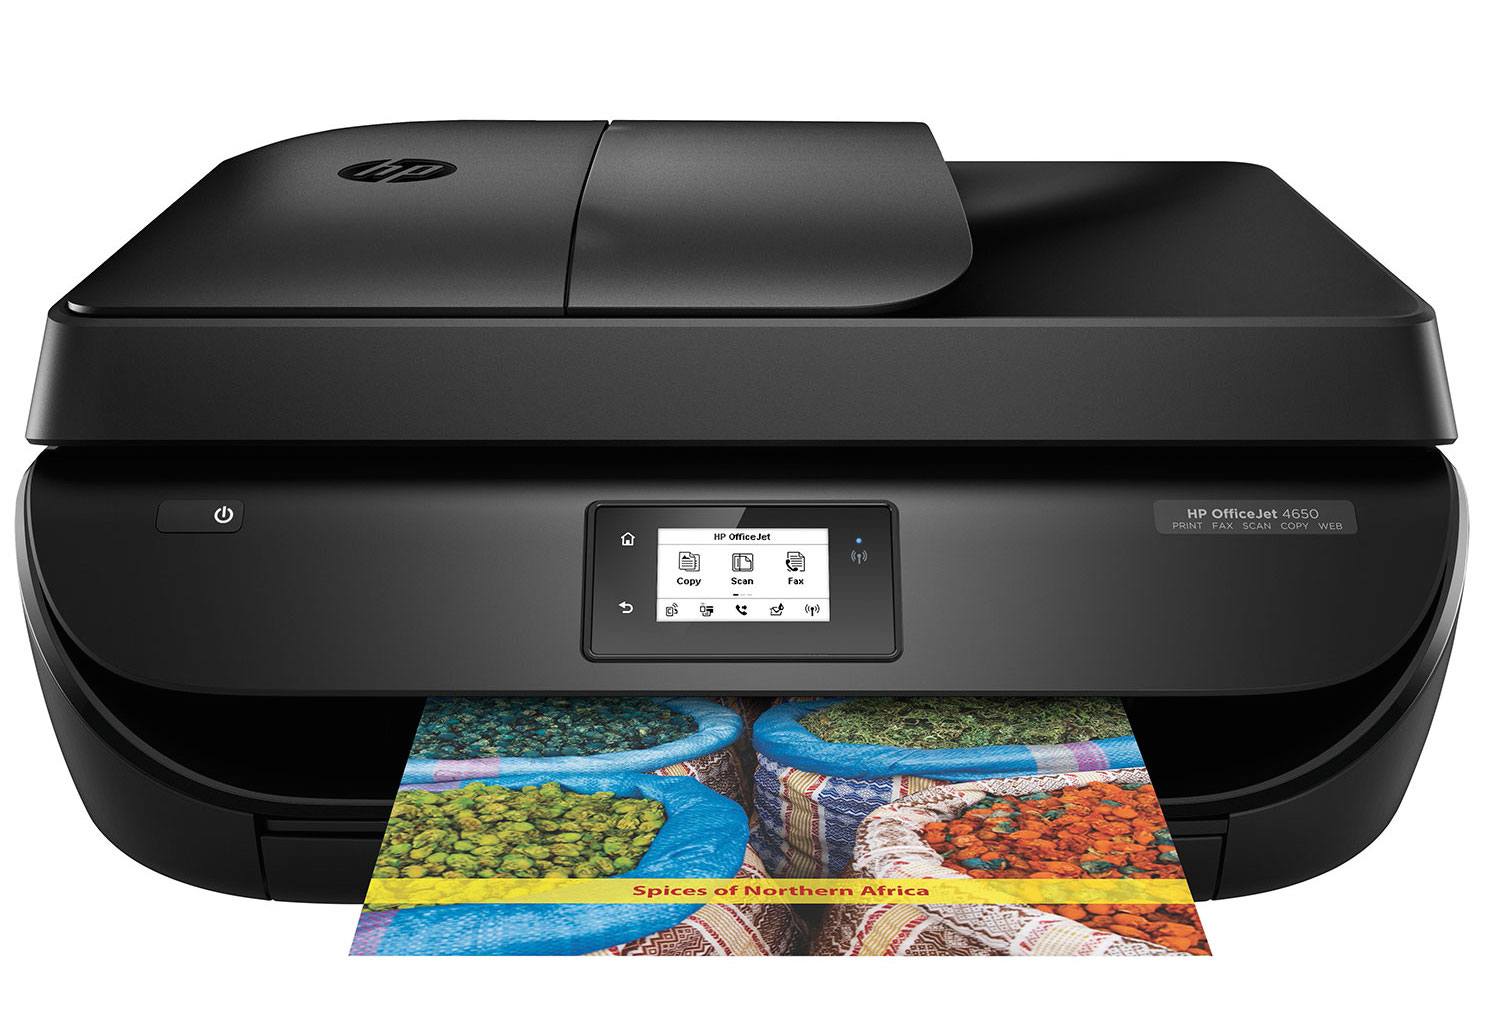 printer buying guide - hp officejet inkjet printer